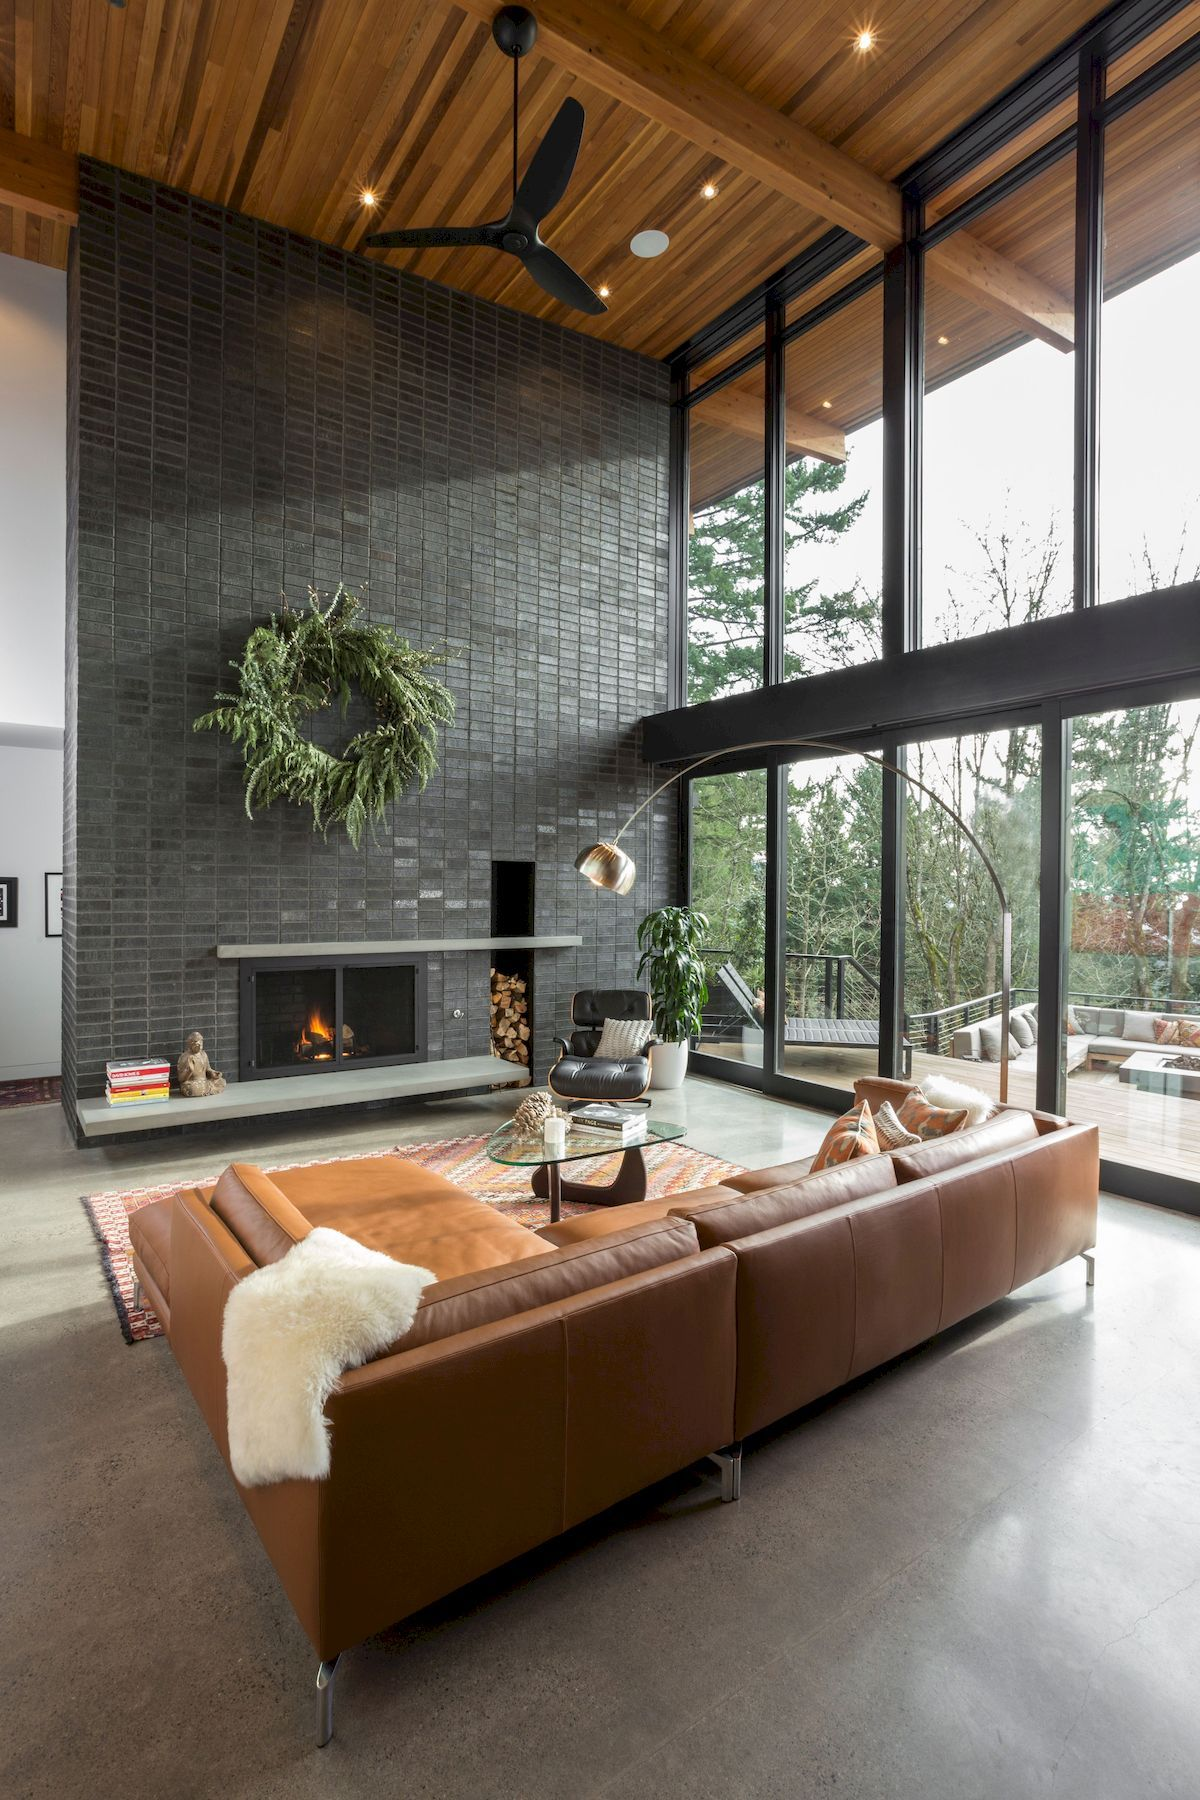 70+ Relaxed Living Room Design Ideas That Can Be Inspiration images